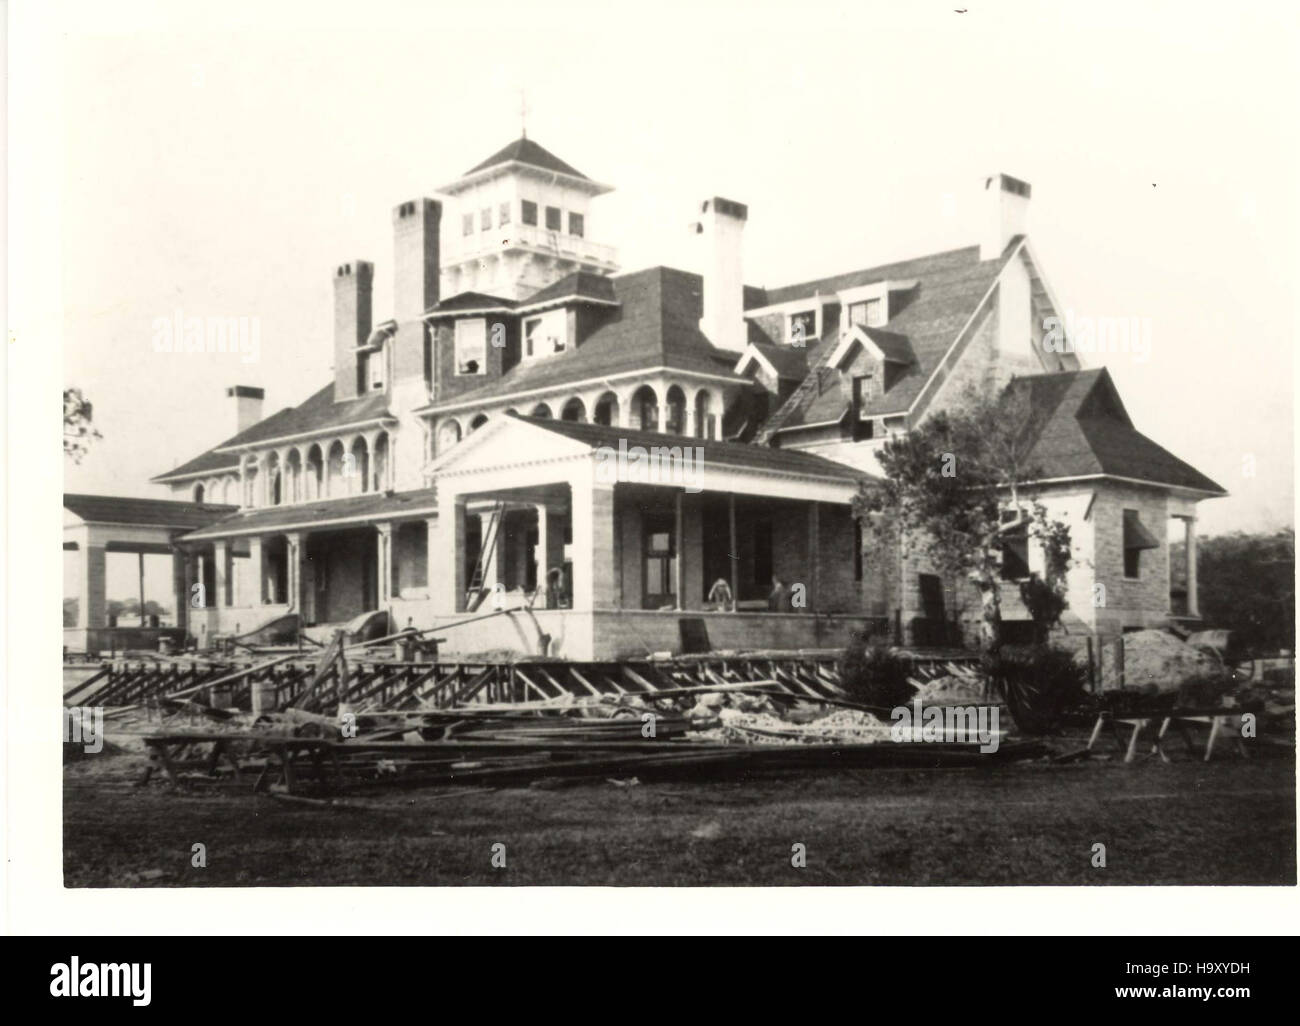 116462146 N08 12411108843 Expanding Dungeness Mansion C 1896 Stock Photo Alamy